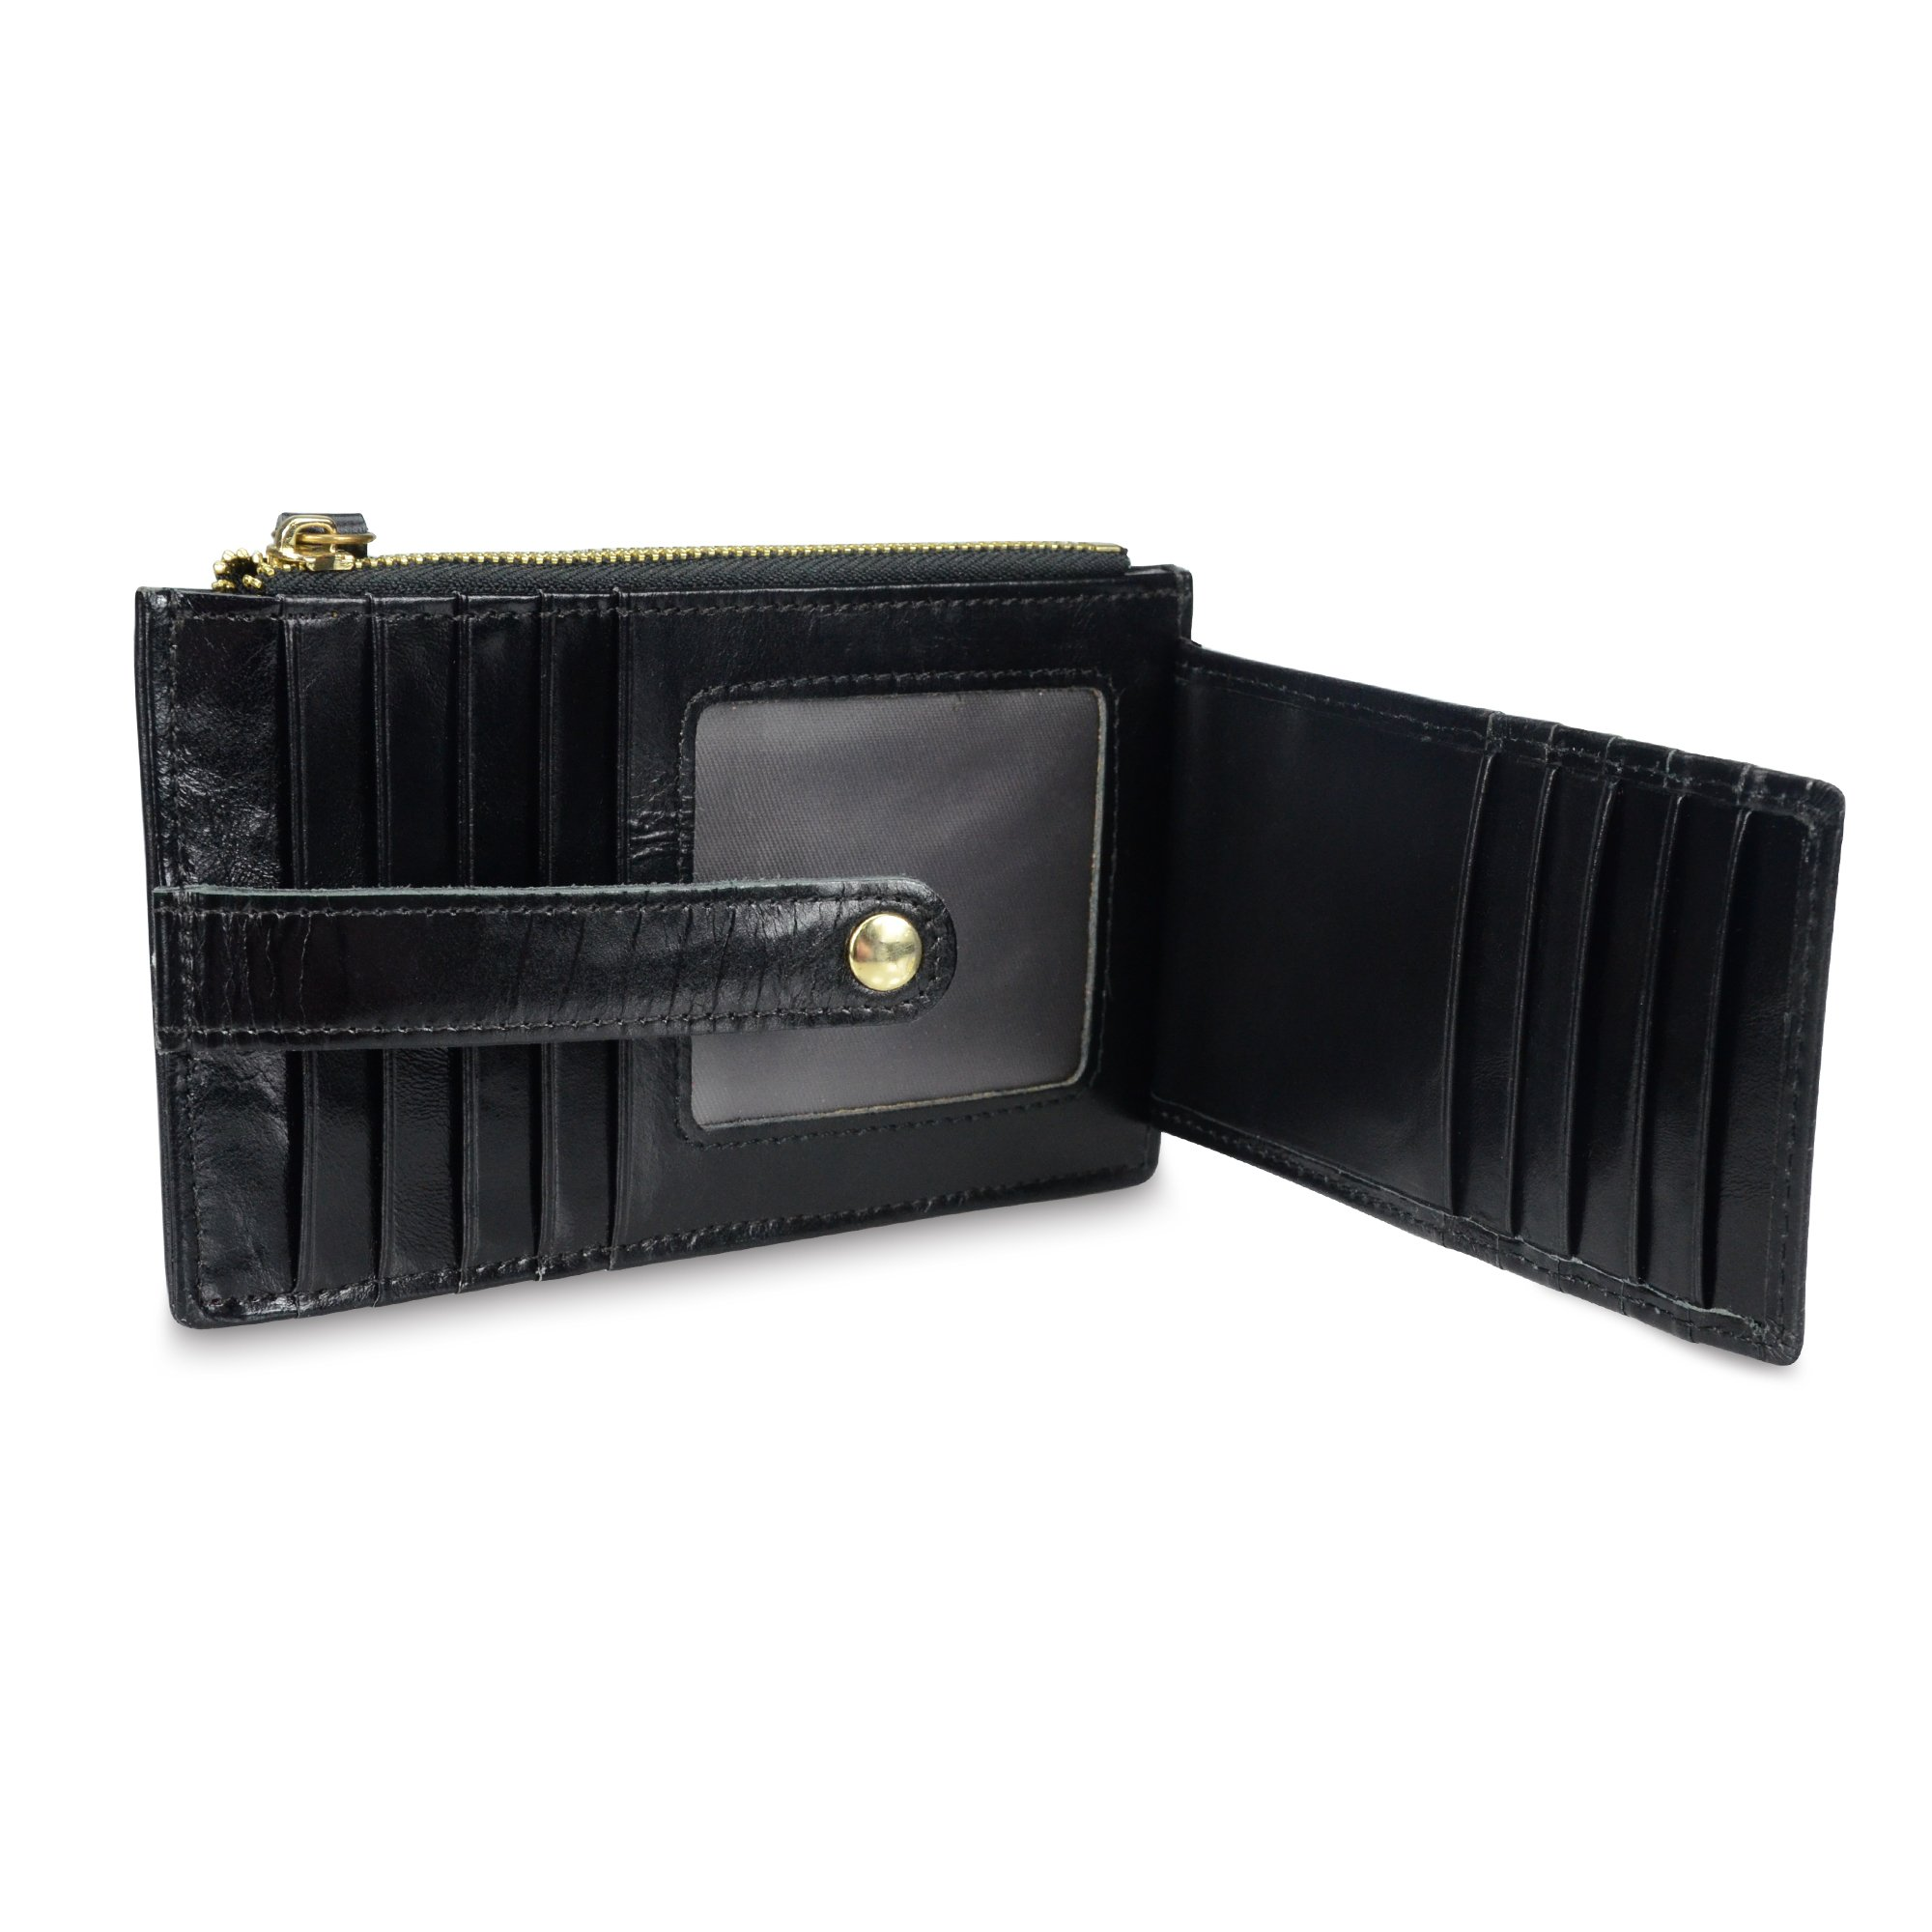 Onstro RFID Blocking Wallets for Women Genuine Leather Multi Credit Card Organizer with ID window by Onstro (Image #5)